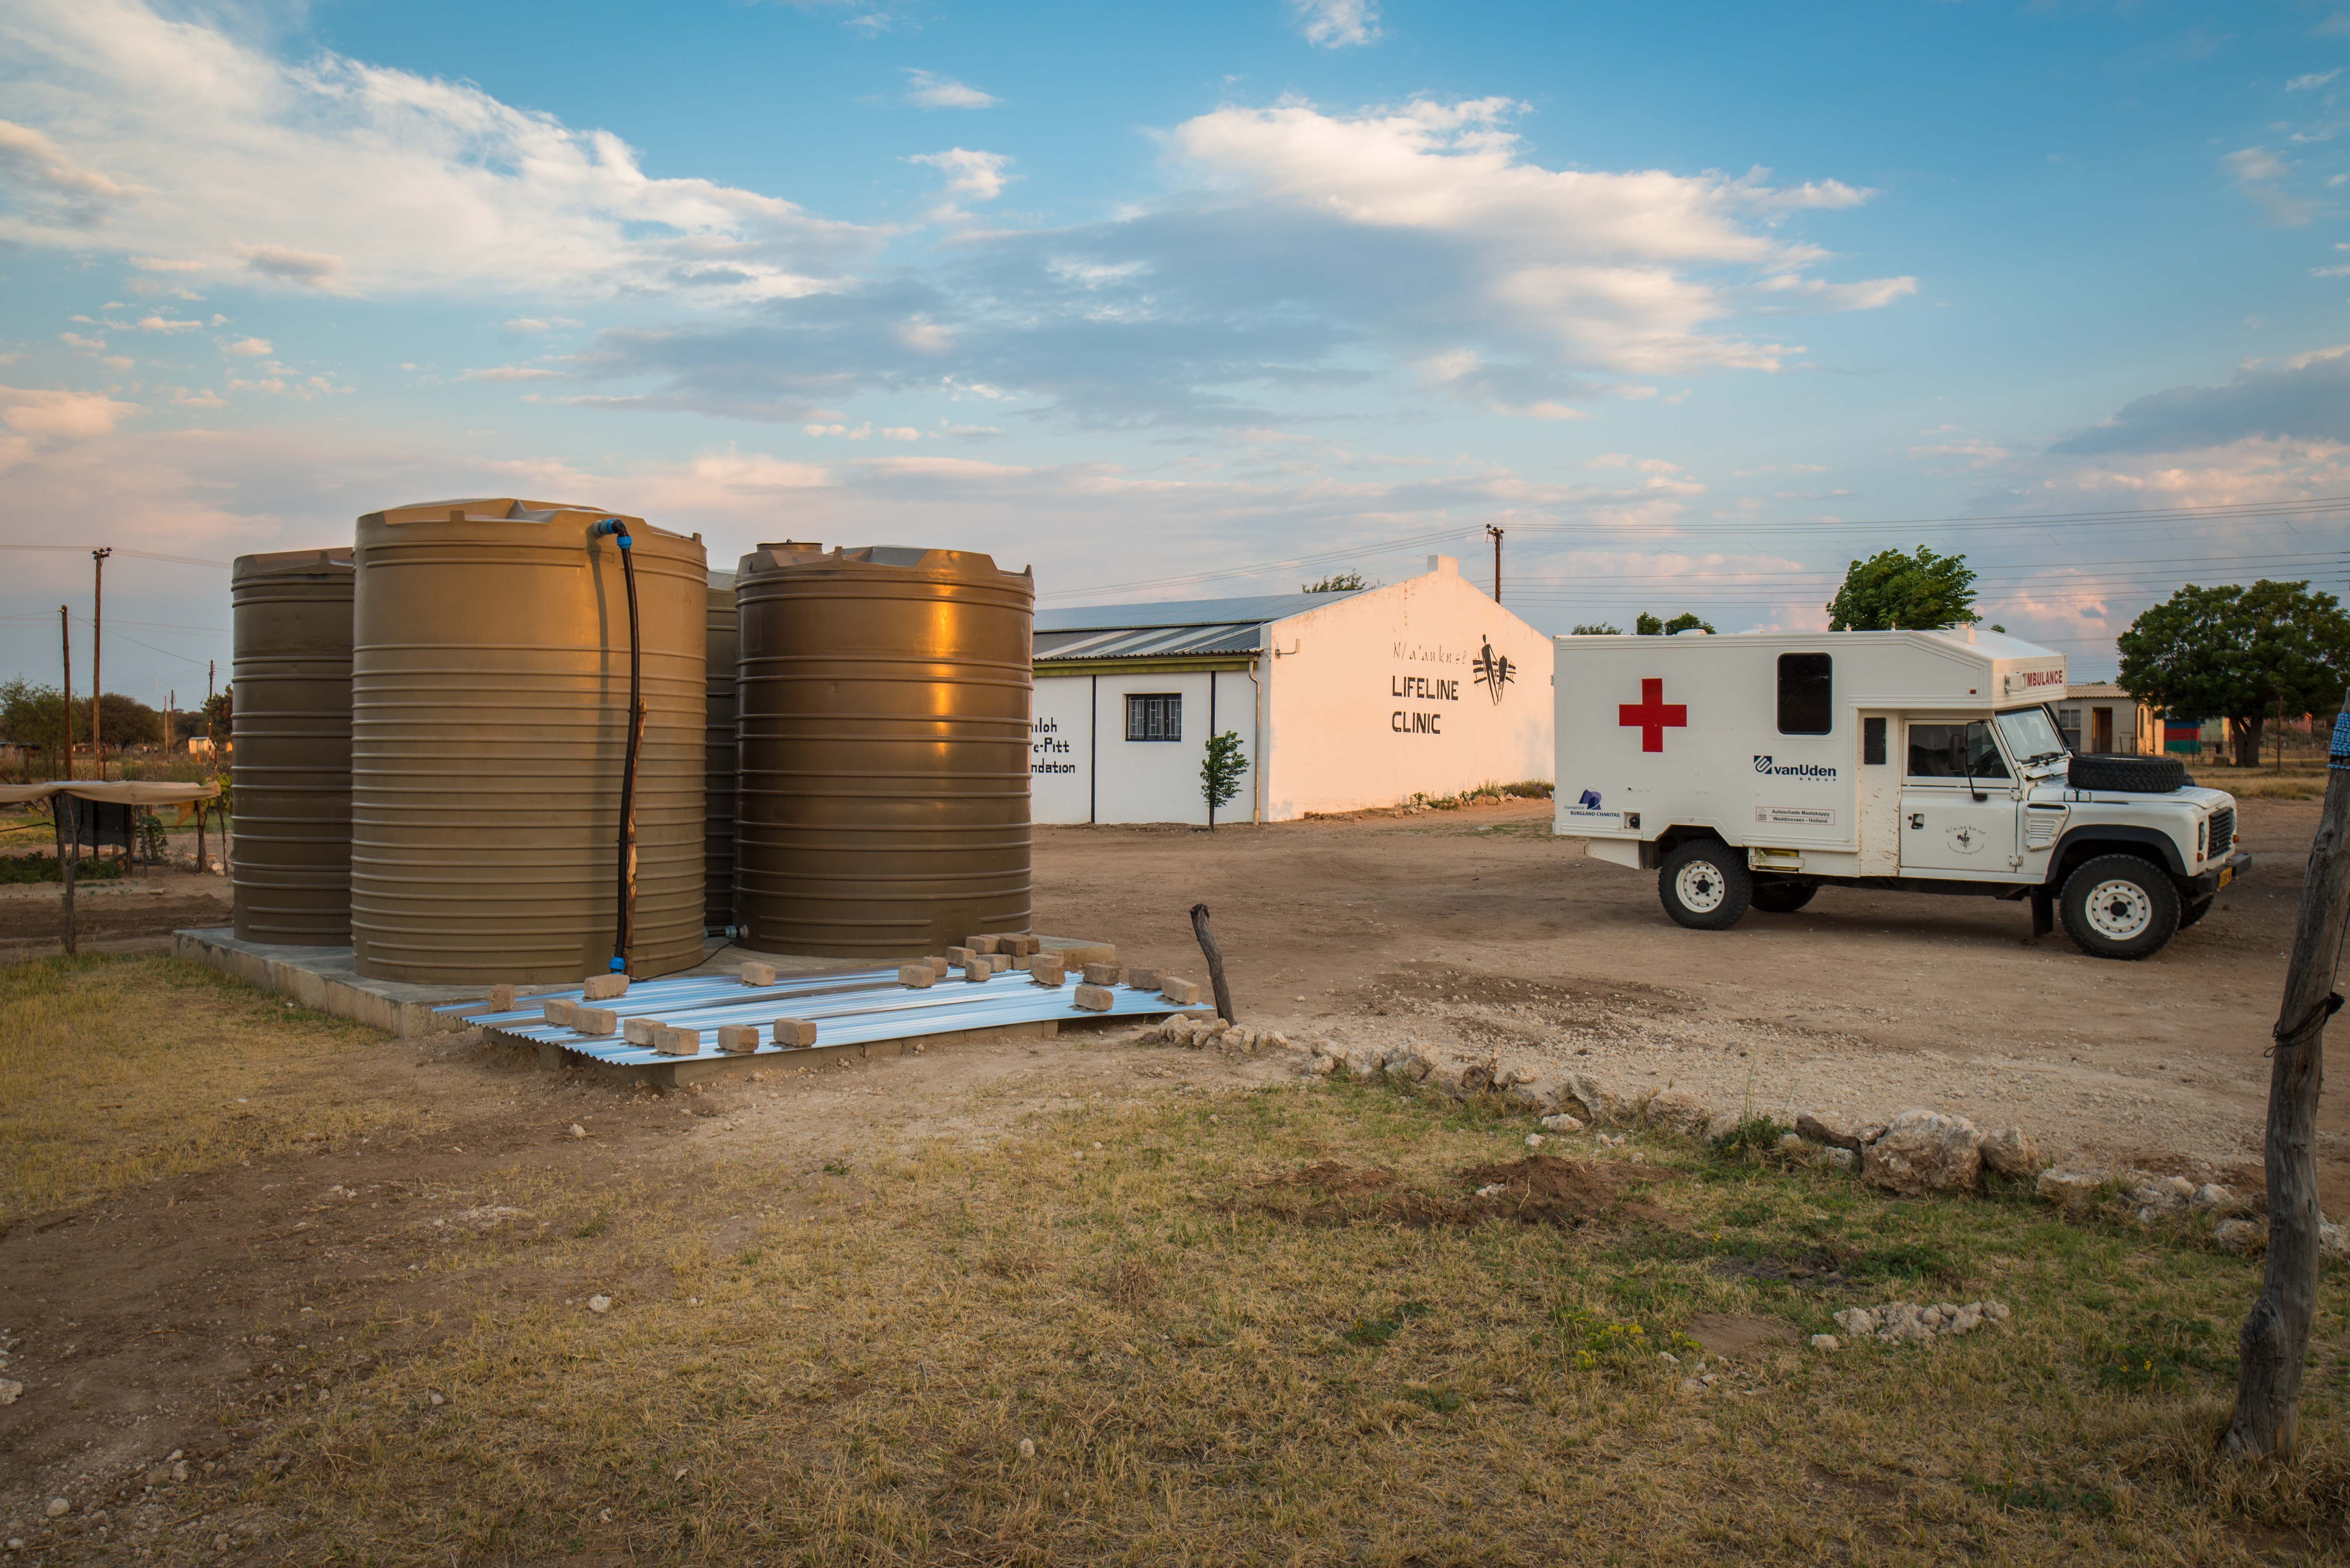 Sponsorships make all the difference: Rainwater harvesting helps the clinic to put money into medical needs, an ambulance that can go where it is needed - rural, isolated villages.